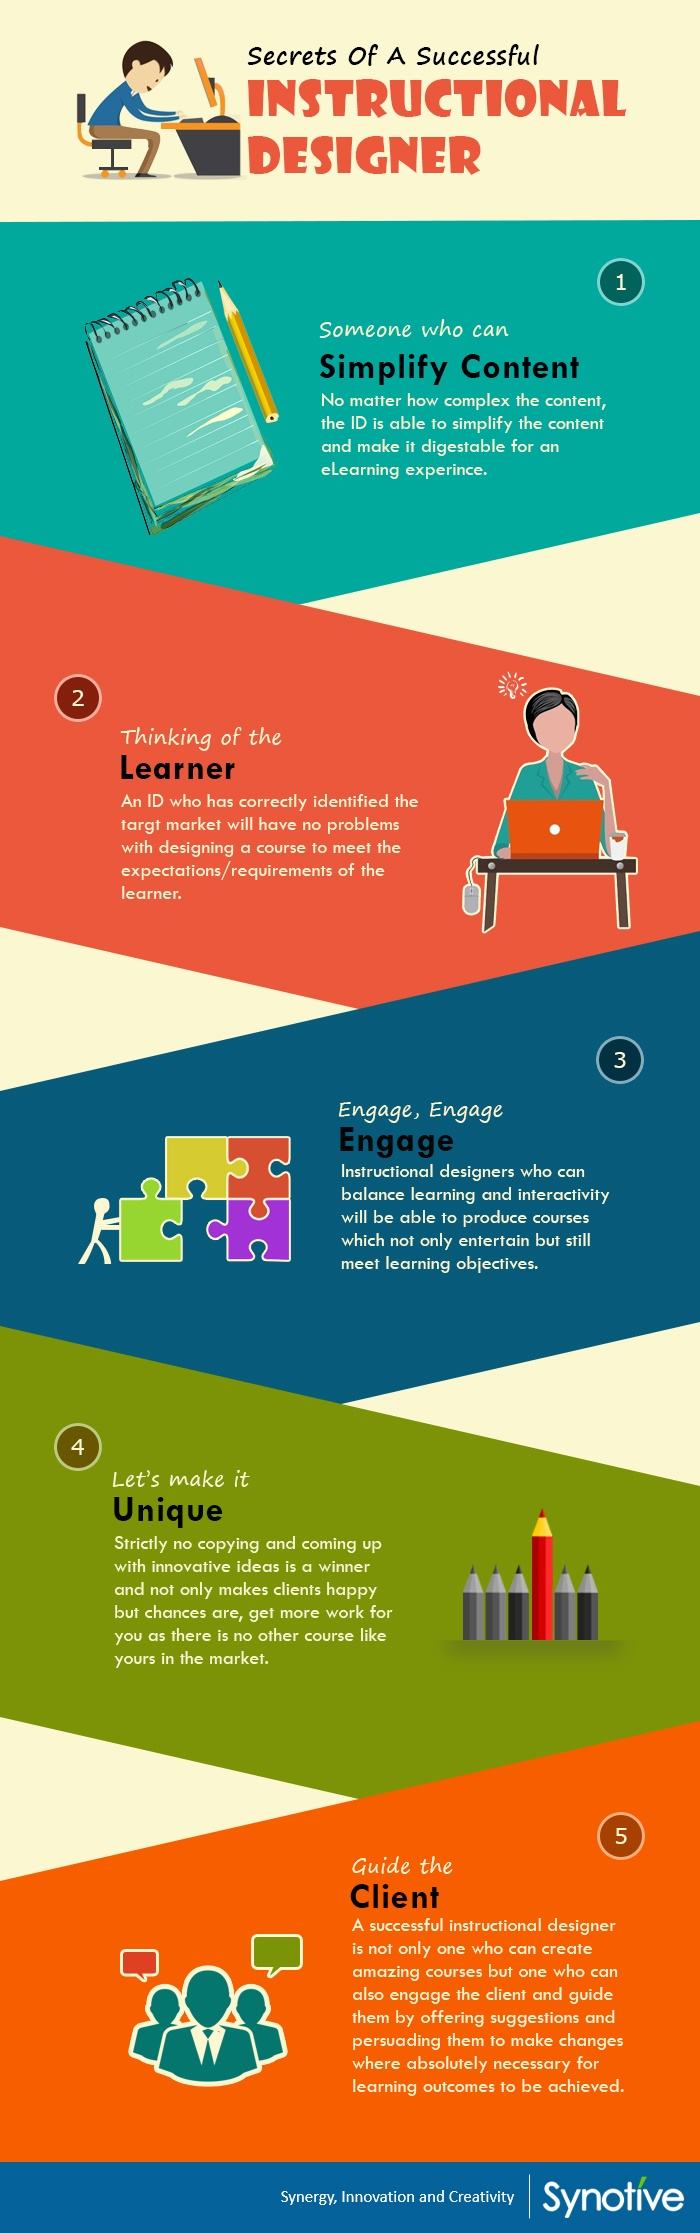 Secrets of a Successful Instructional Designer Infographic